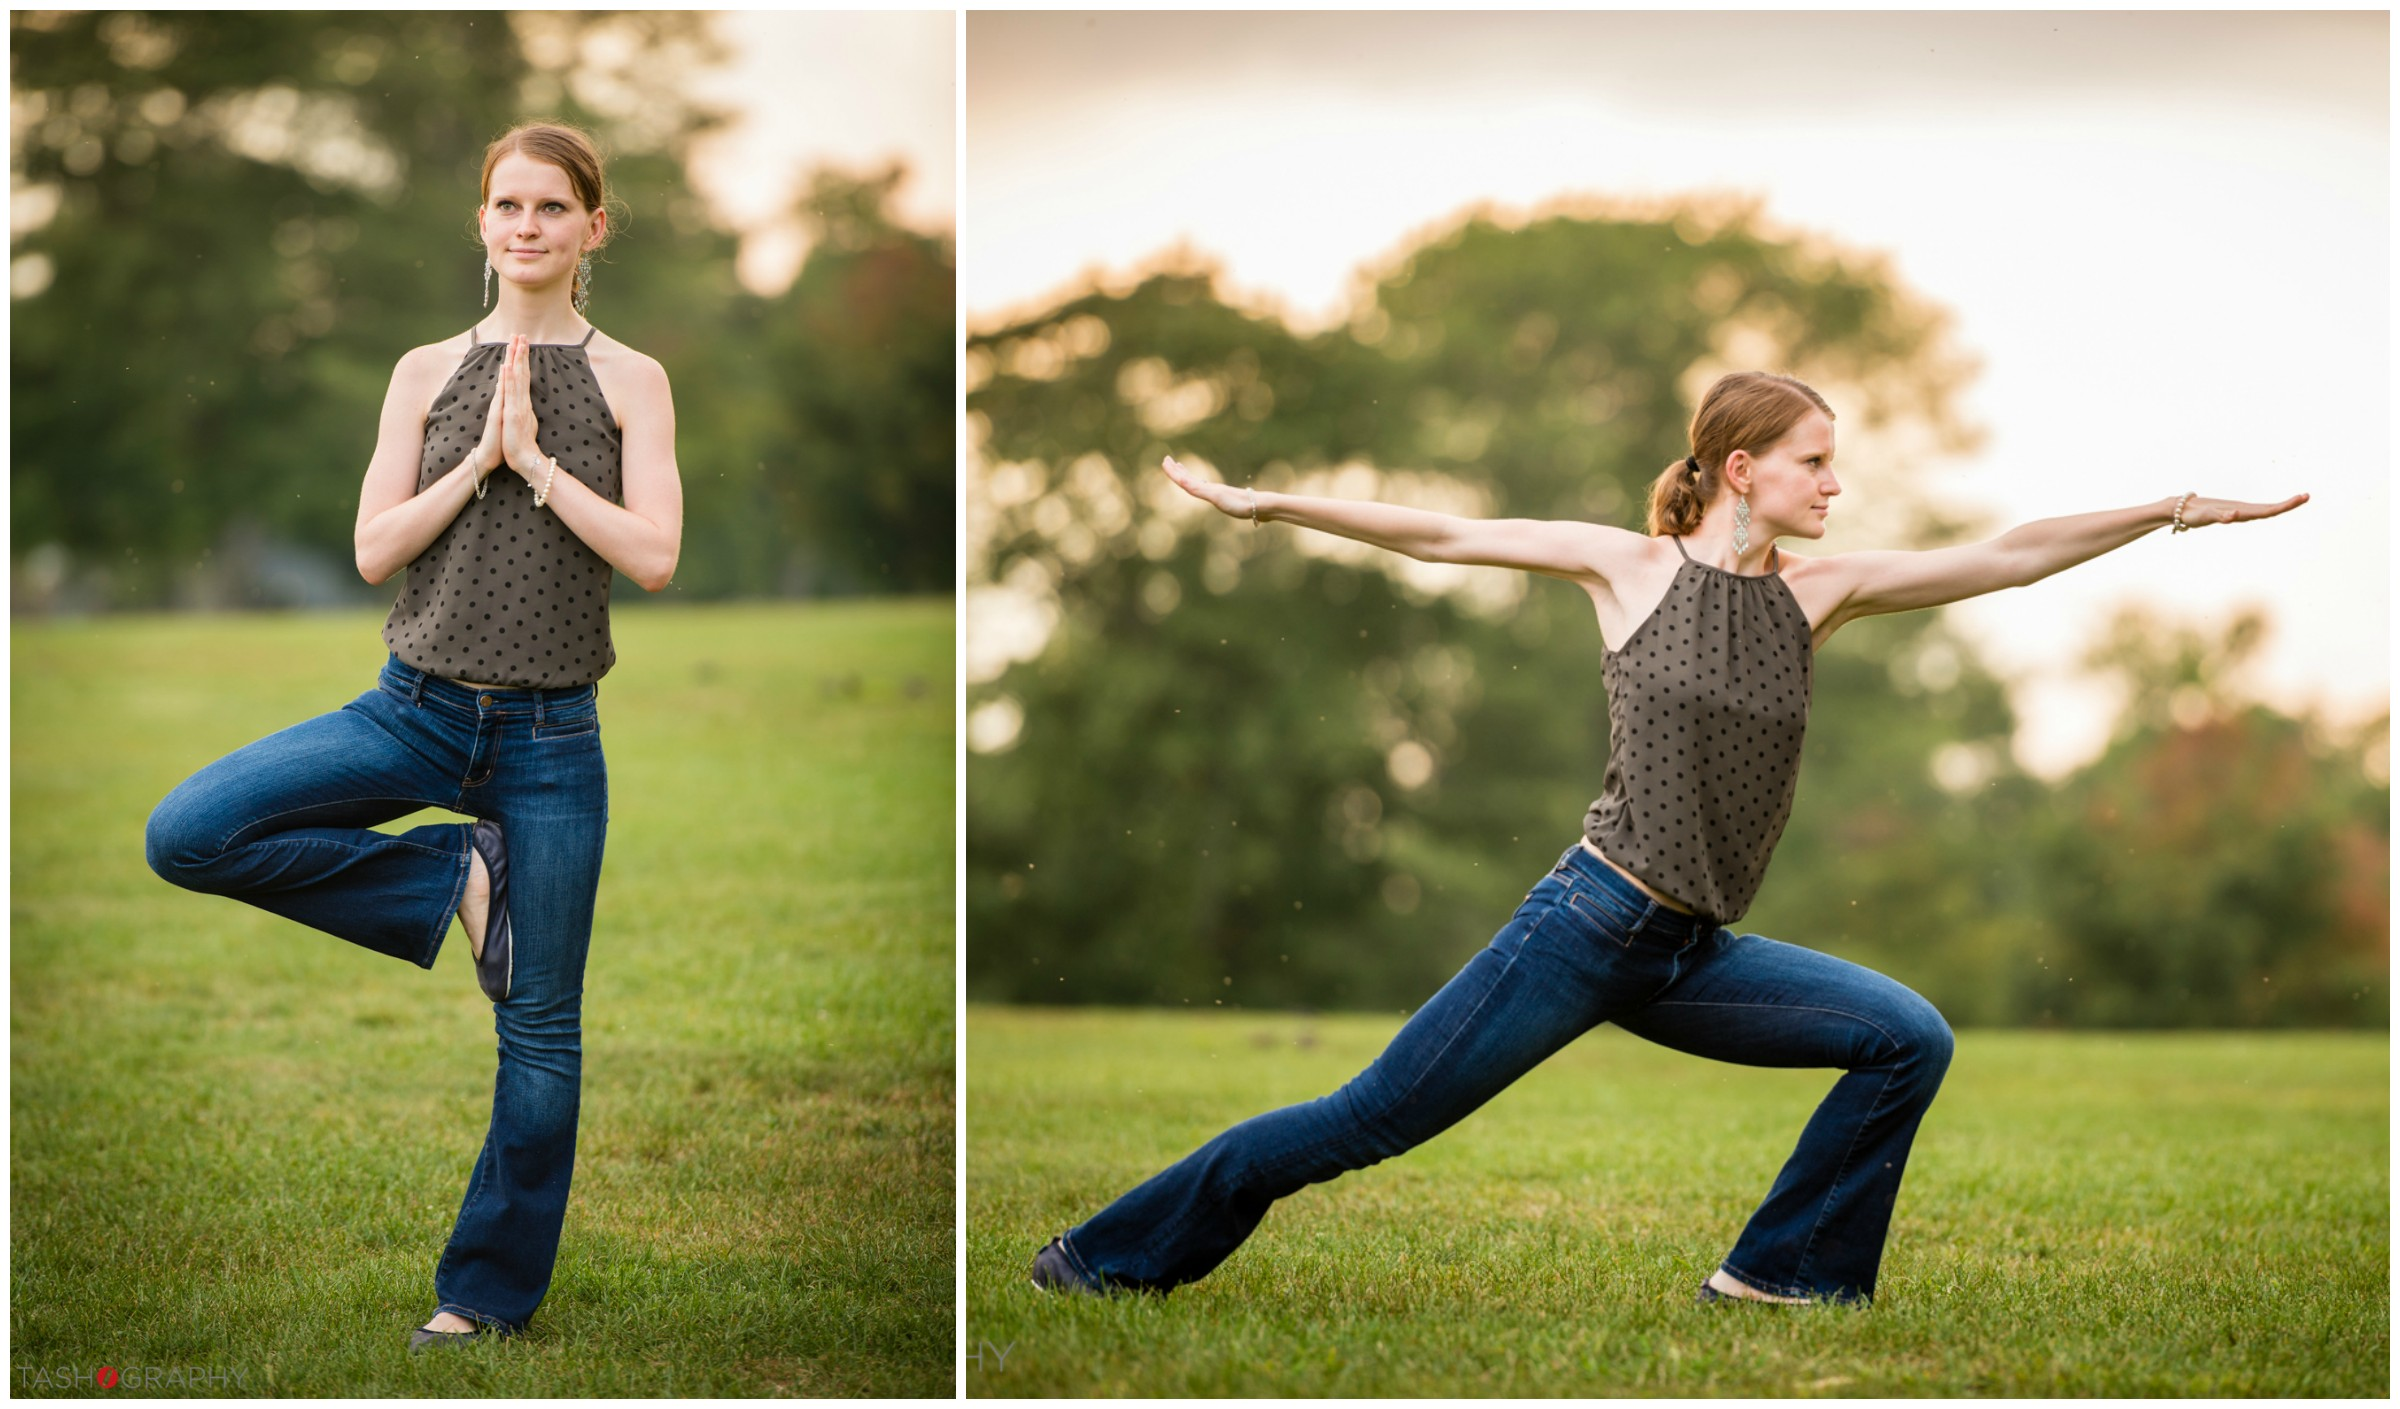 Anna striking her favorite yoga poses in the gorgeous light.